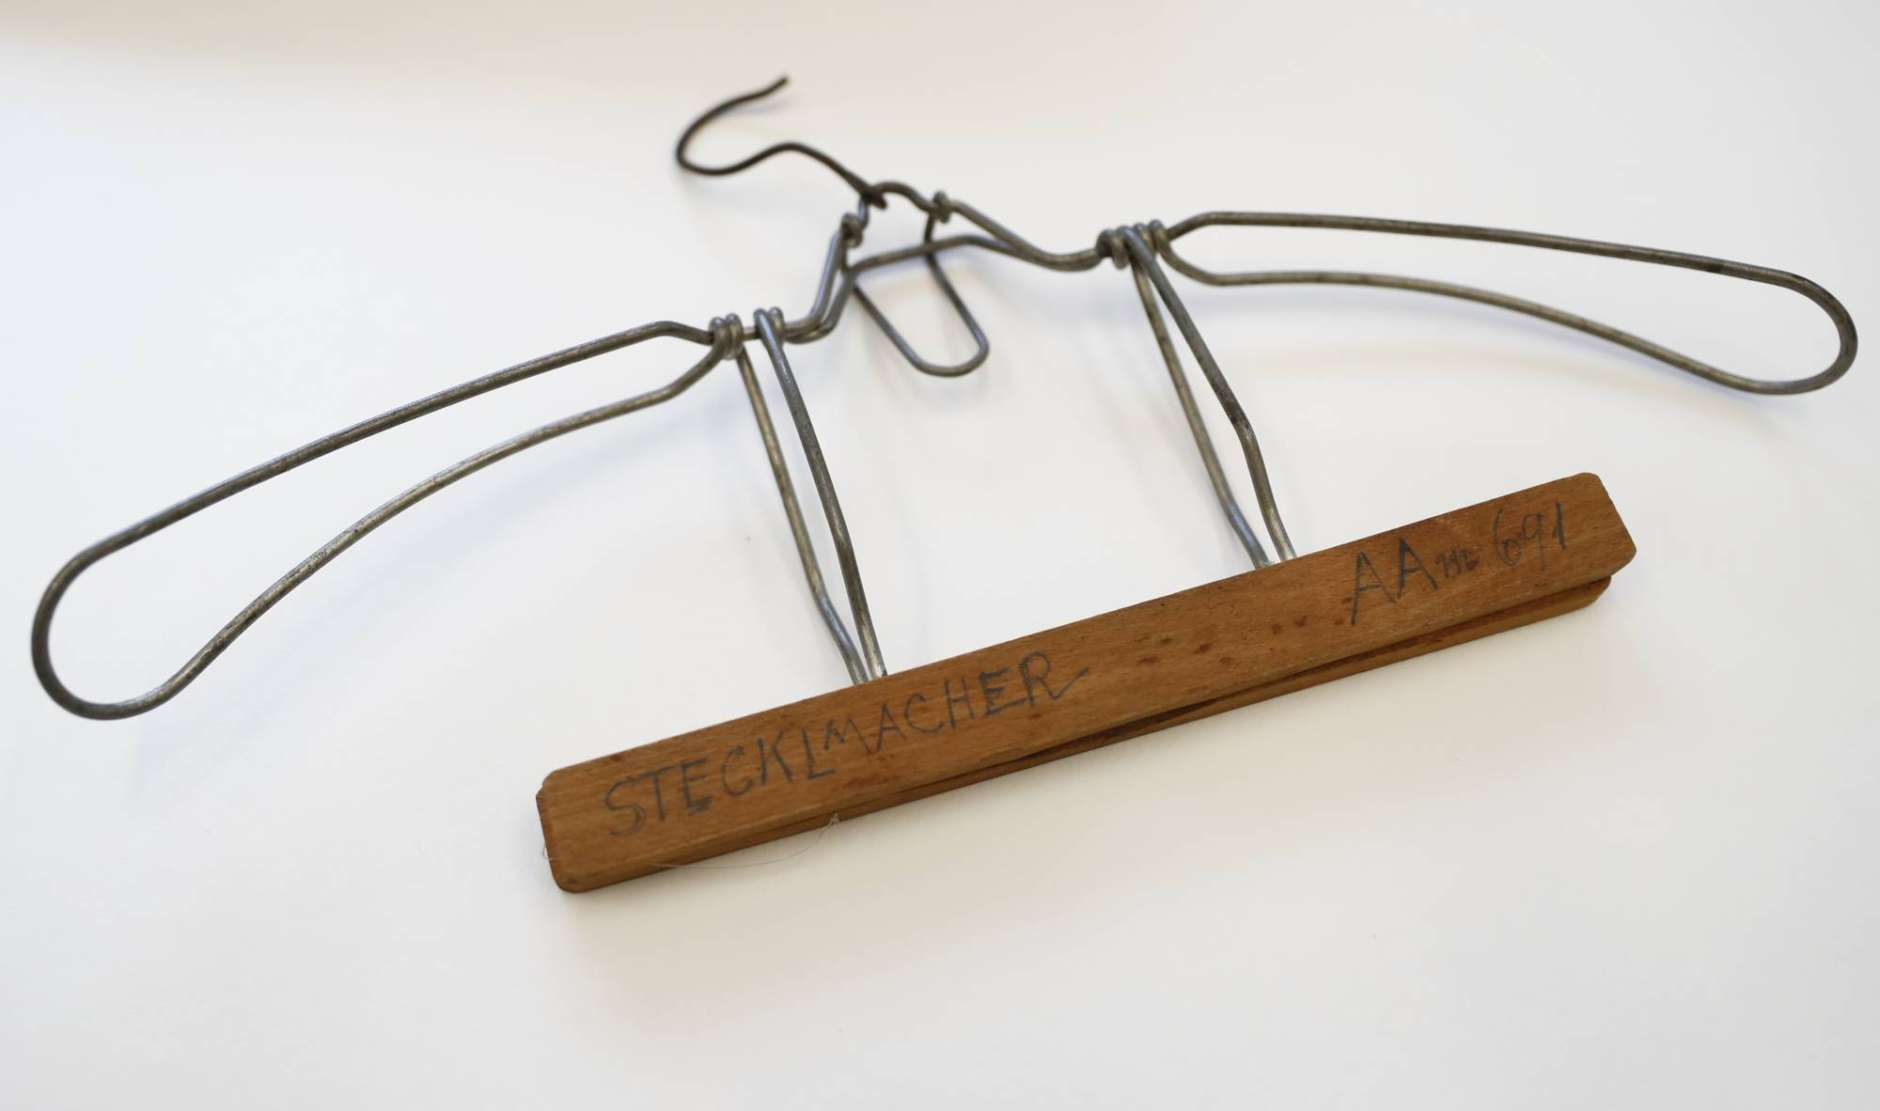 A coat hanger belonging to Fritz Steckelmacher from the time of the Holocaust is seen on display at the U.S. Holocaust Memorial Museum's David and Fela Shapell Family Collections, Conservation and Research Center in Bowie, Md., Monday, April 24, 2017. The Shapell Center is a new state-of-the-art facility that will house the collection of record of the Holocaust. (AP Photo/Carolyn Kaster)